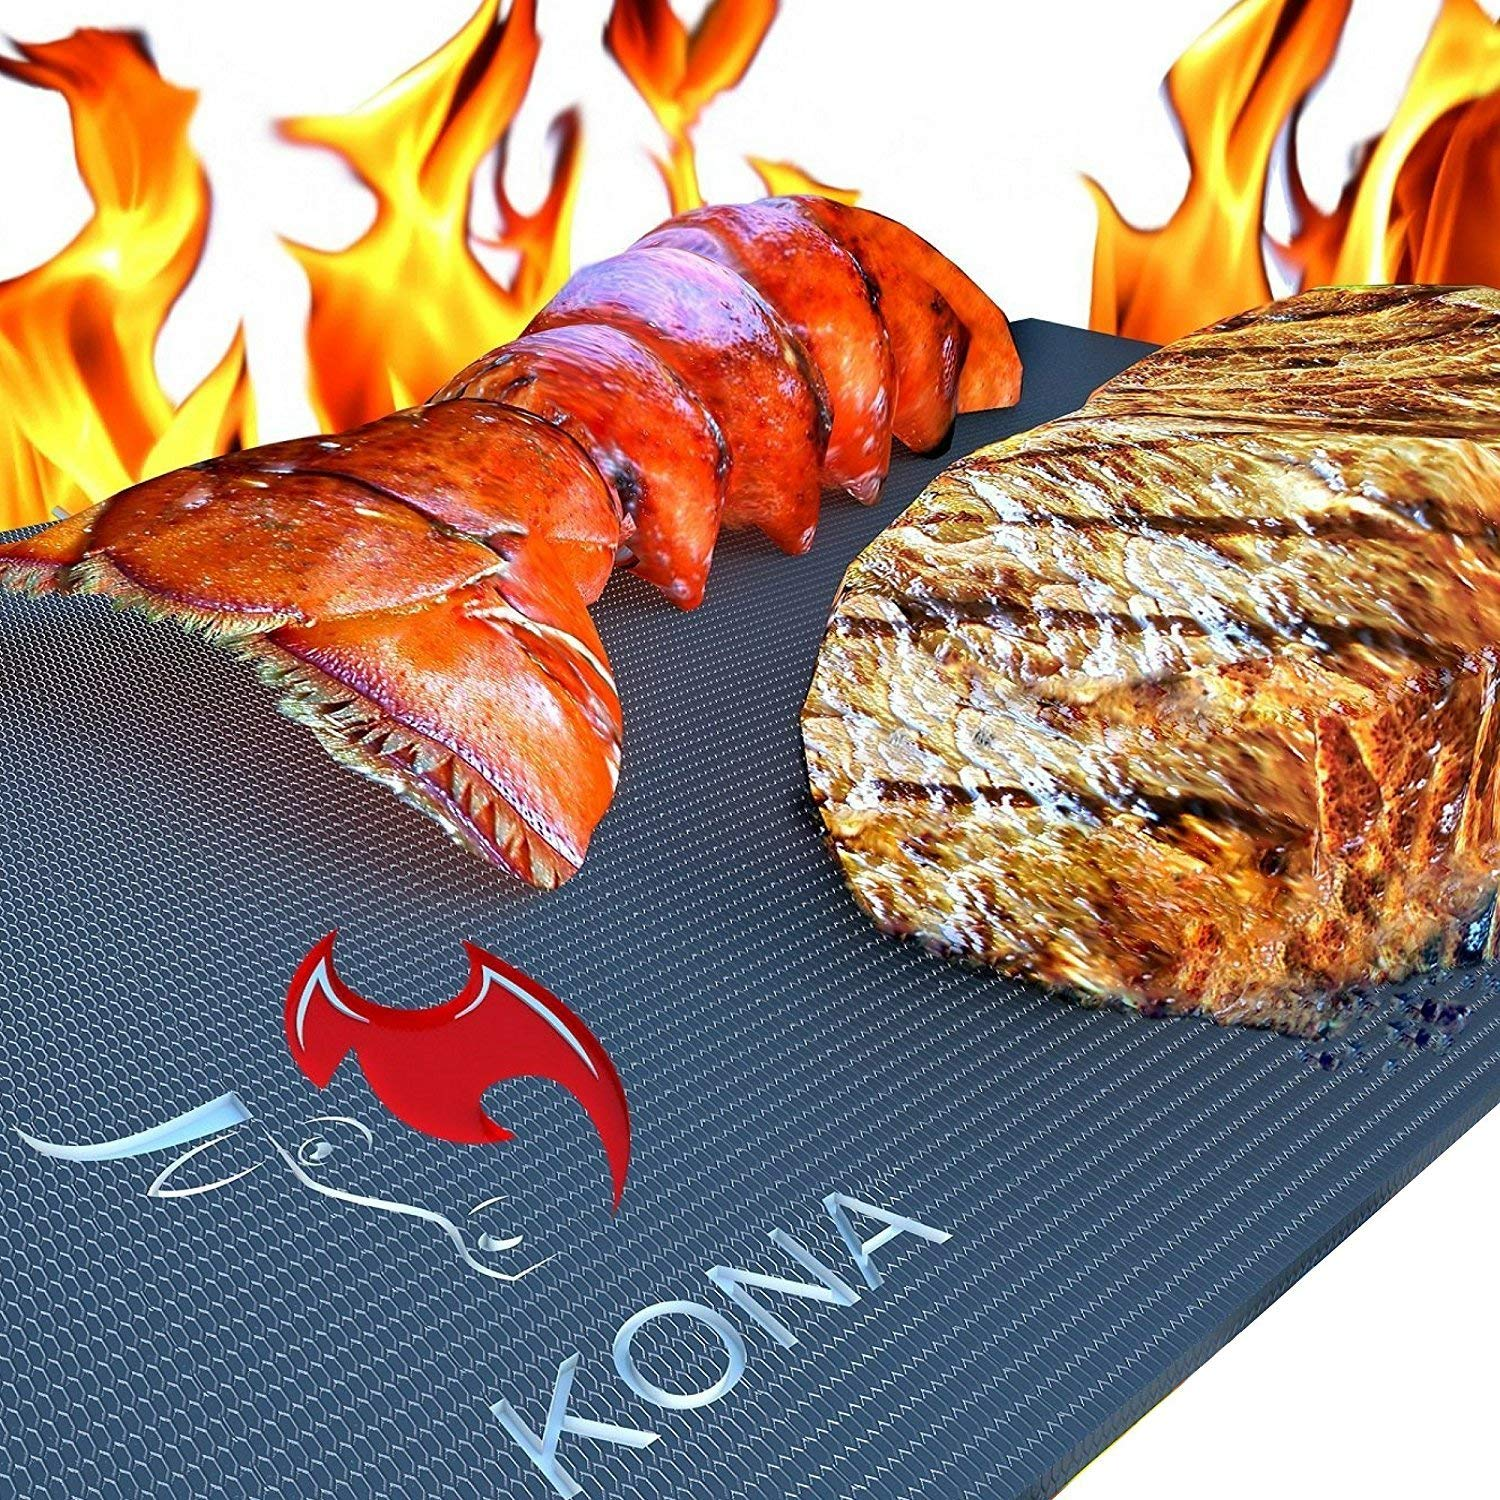 Kona Best BBQ Grill Mat - Heavy Duty 600 Degree Non-Stick Mats (Set of 2) - 7 Year Warranty (Renewed) by Kona